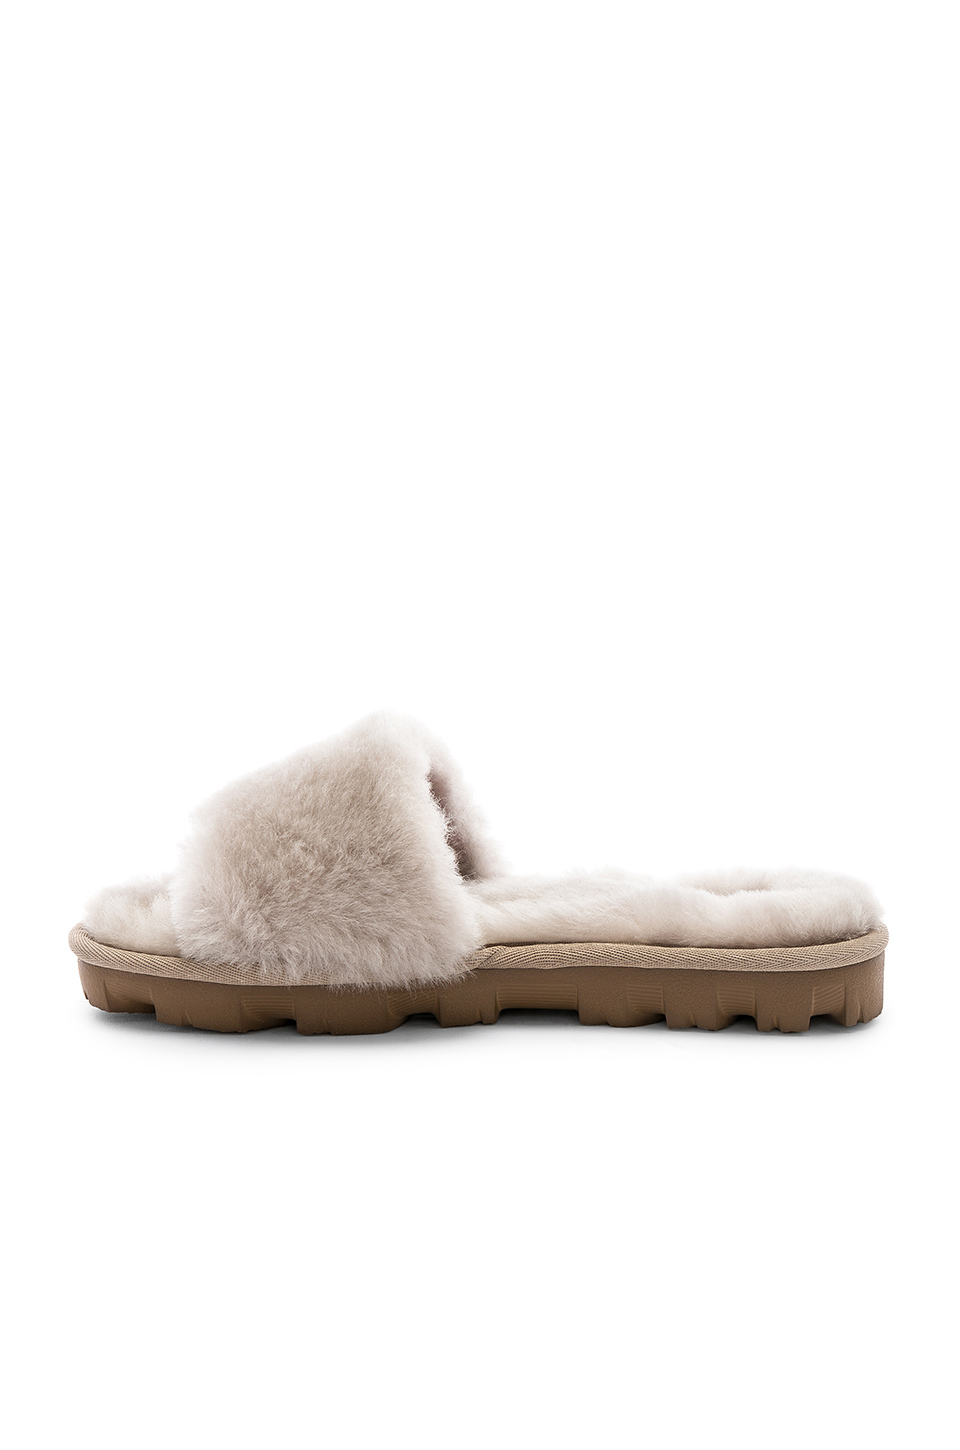 UGG Cozette Slipper